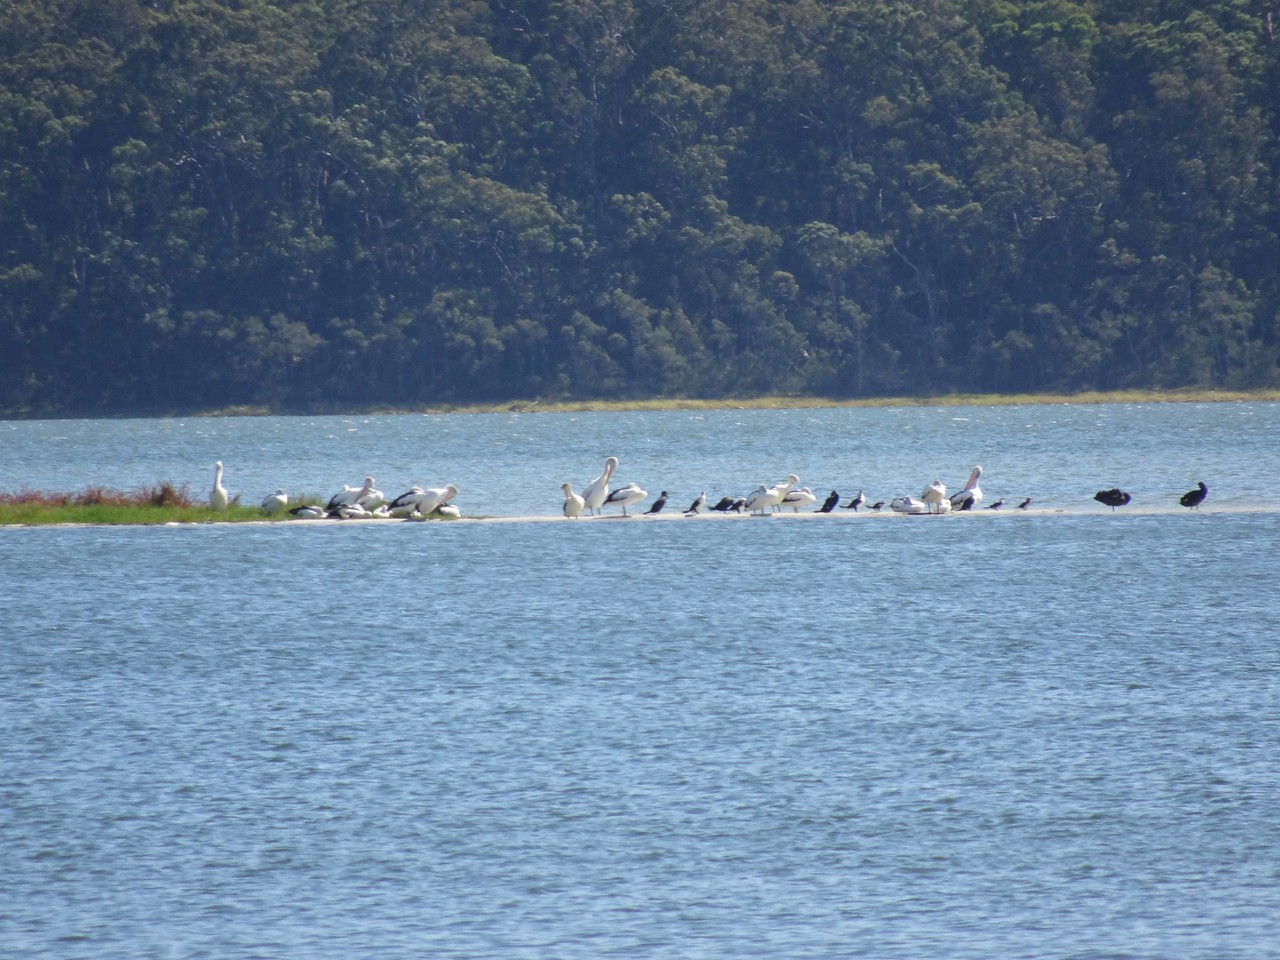 688 Pelicans and more